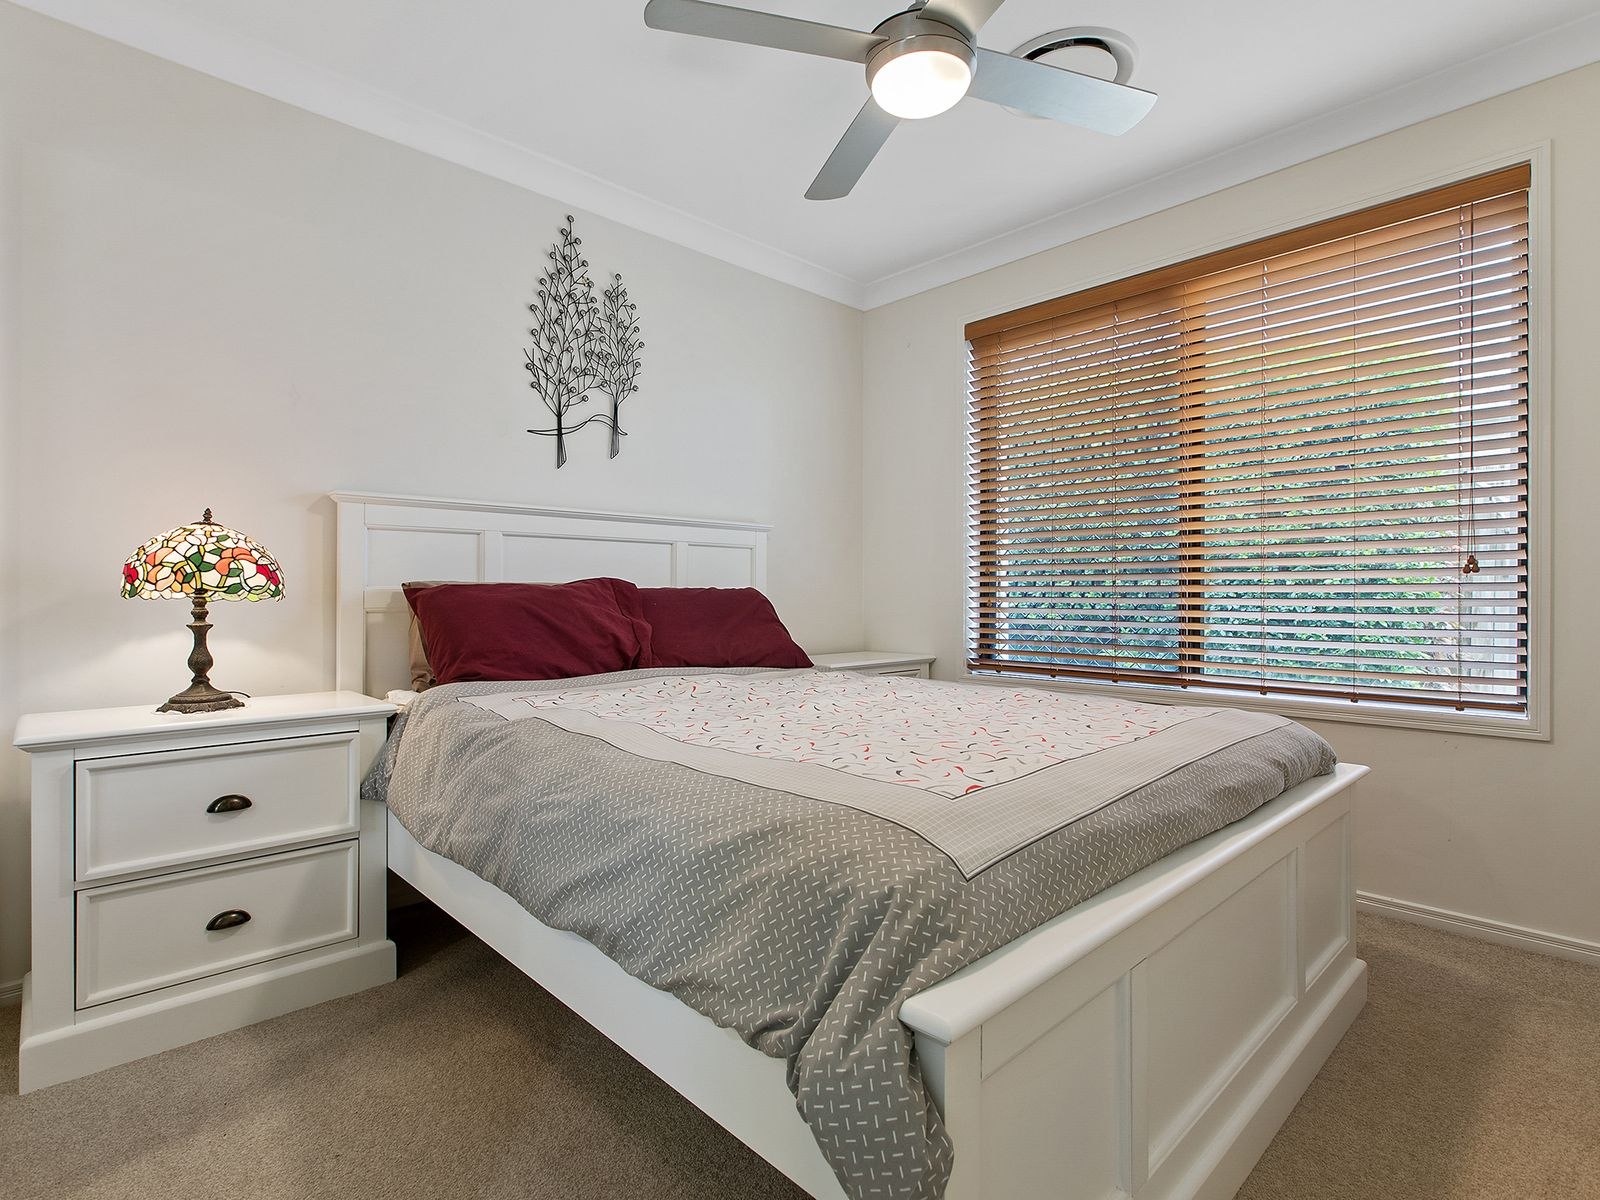 2 Burrows Street, Sippy Downs, QLD 4556